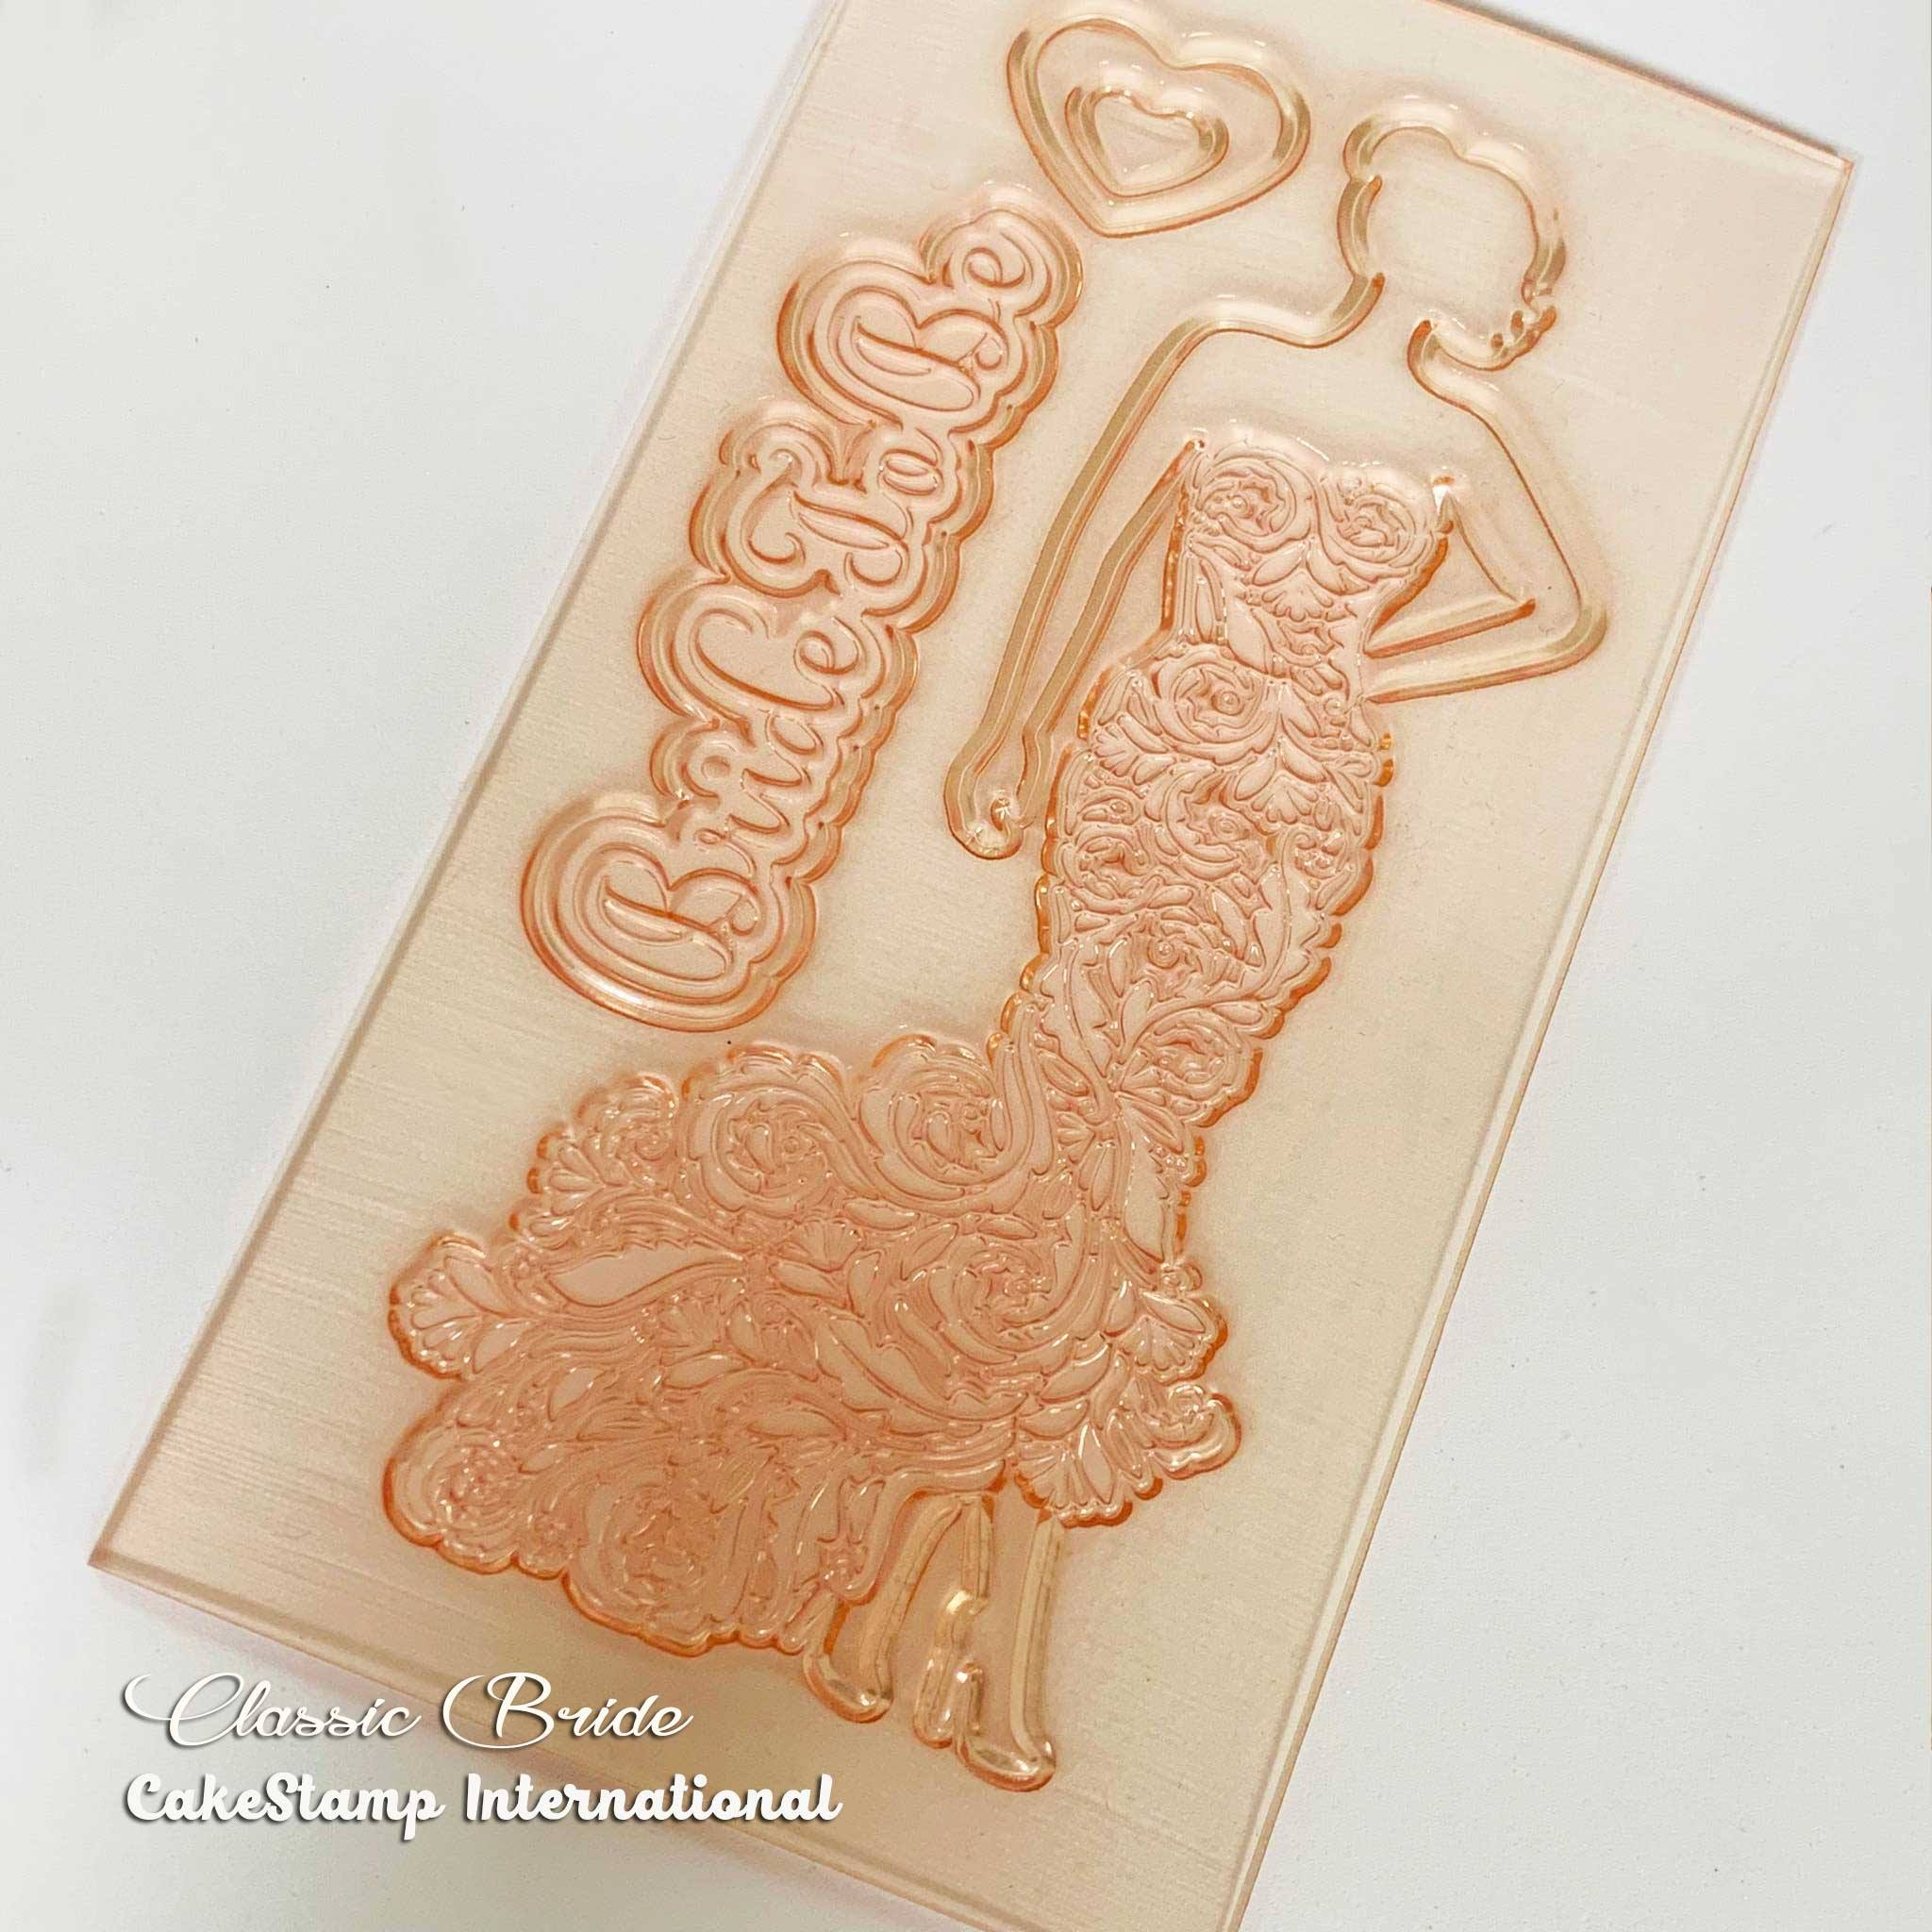 Classic Bride to be mold